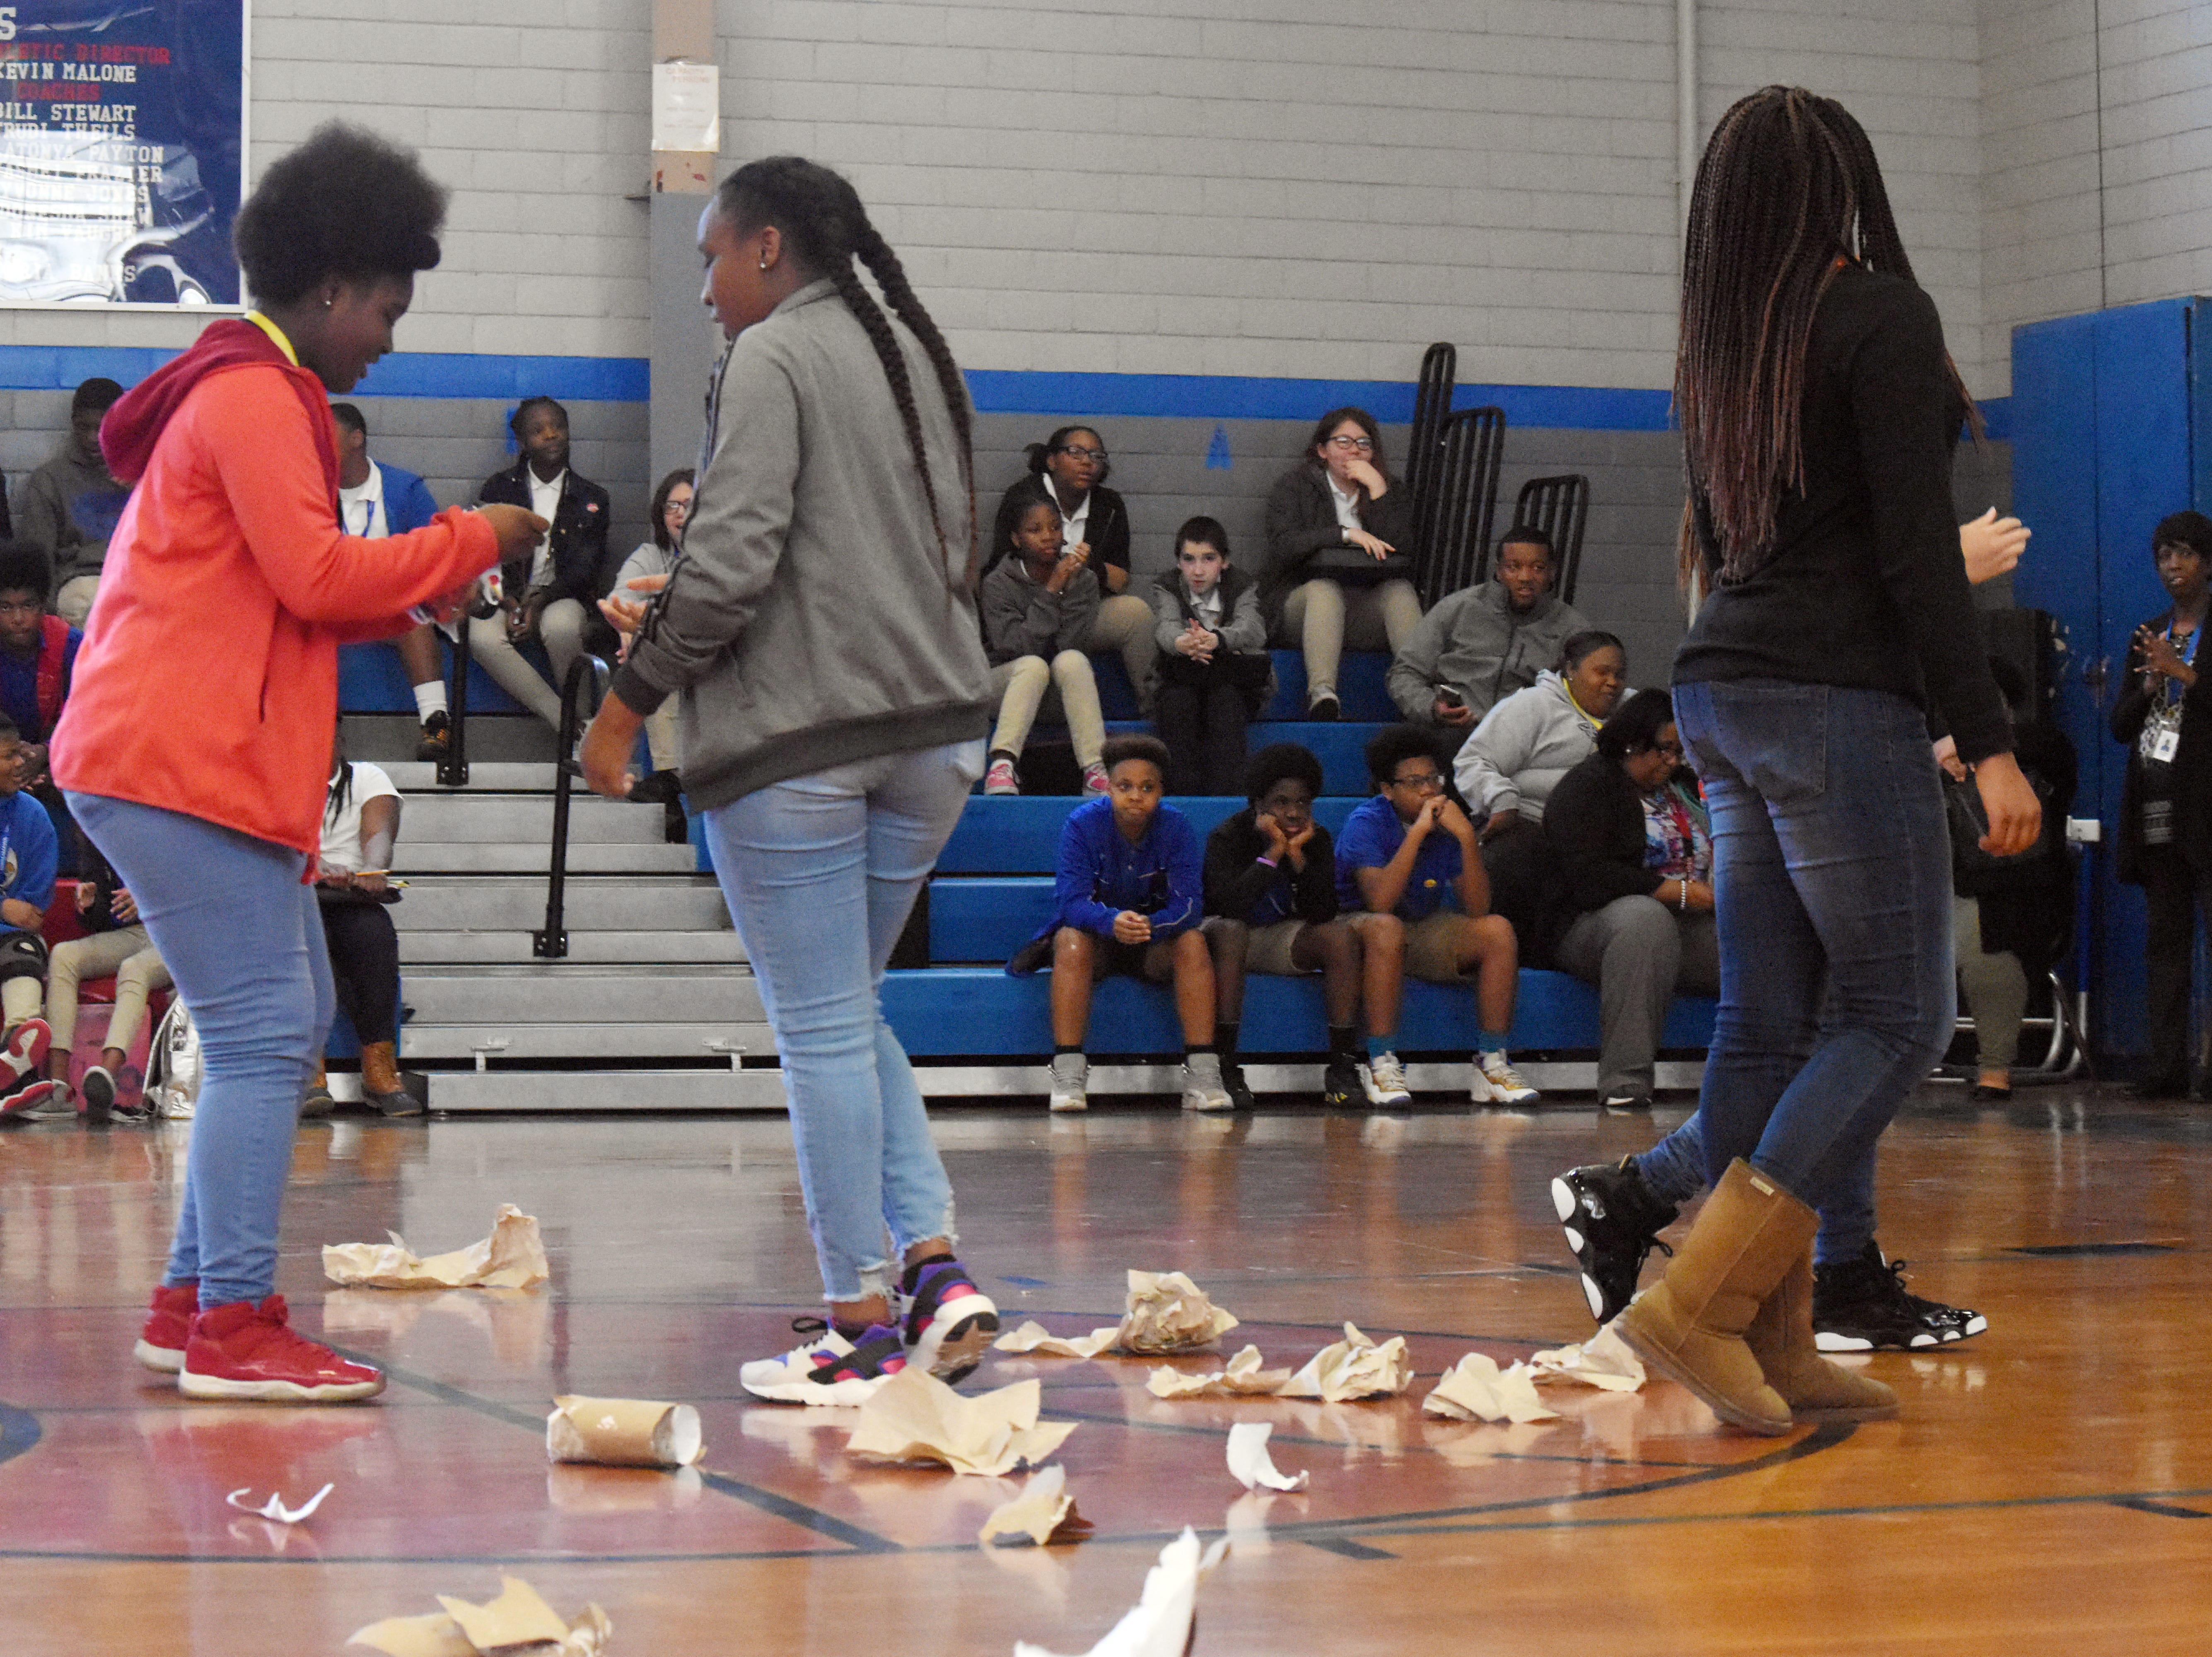 """Members of the Living Healthy Club at Alexandria Middle Magnet School tear up a replica of a cigarette during an assembly held Kick Butts Day. The students came up with the activities for the assembly. AMMS was one of 53 schools in Central Louisiana participating in Kick Butts Day with funding from the Healthy Behaviors School District Partnership Grant from The Rapides Foundation. Kick Butts Day is recognized nationally by young people to raise awareness against the use of tobacco products. A press release from The Rapides Foundation states, """"The Healthy Behaviors School District Partnership Grant seeks to prevent and reduce tobacco use, substance and alcohol abuse, and overweight/obesity by focusing on changing policy, social norms and environments. Grant activities are based on best and promising practices to create comprehensive school- and community-based awareness and prevention programs in order to positively impact Central Louisiana students, educators and staff. The goal is to provide the knowledge and skills necessary to make better and informed behavior decisions leading to healthier lives."""""""